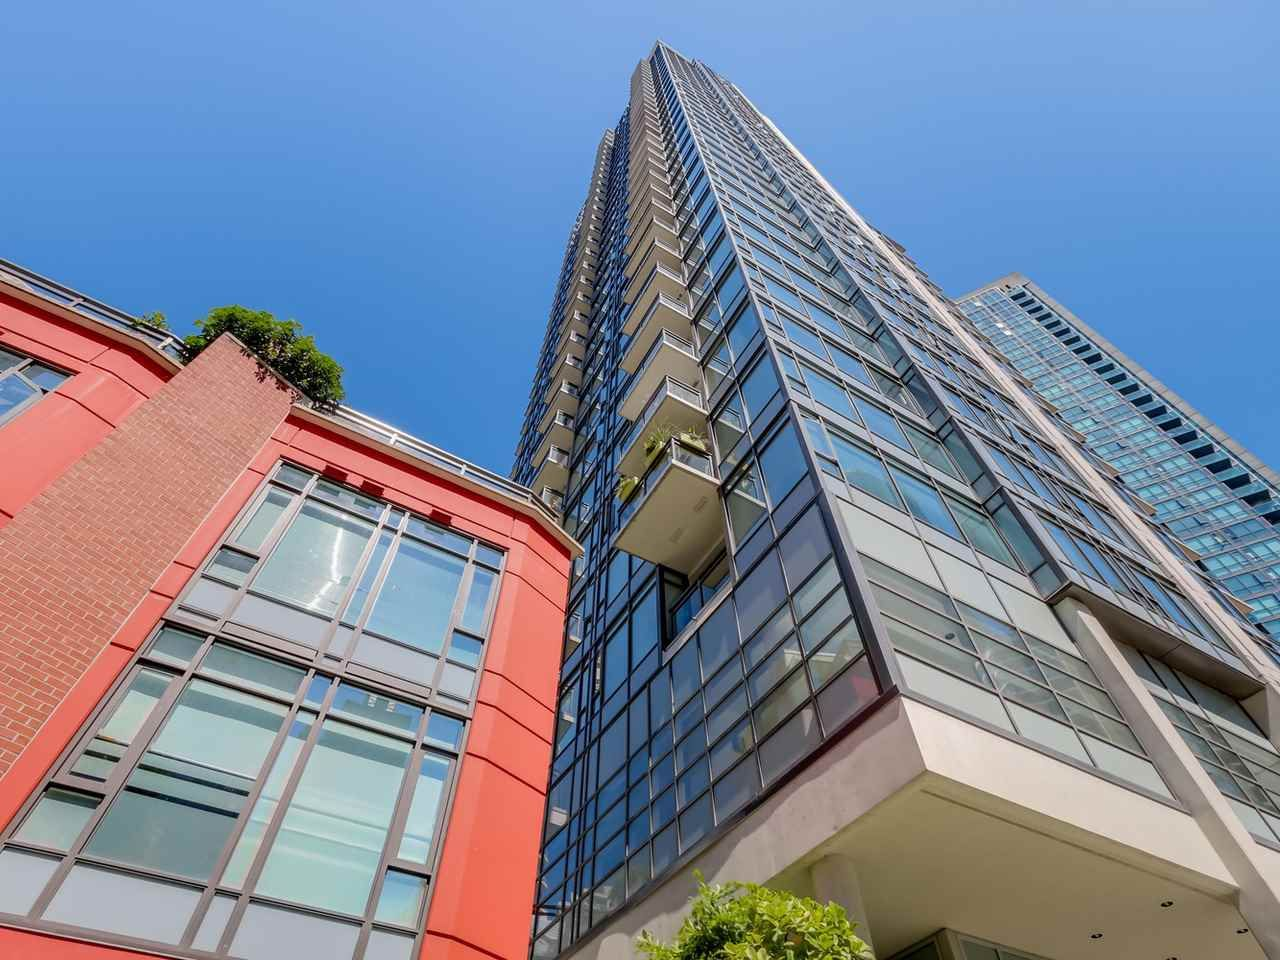 """Main Photo: 803 1211 MELVILLE Street in Vancouver: Coal Harbour Condo for sale in """"The Ritz"""" (Vancouver West)  : MLS®# R2084525"""